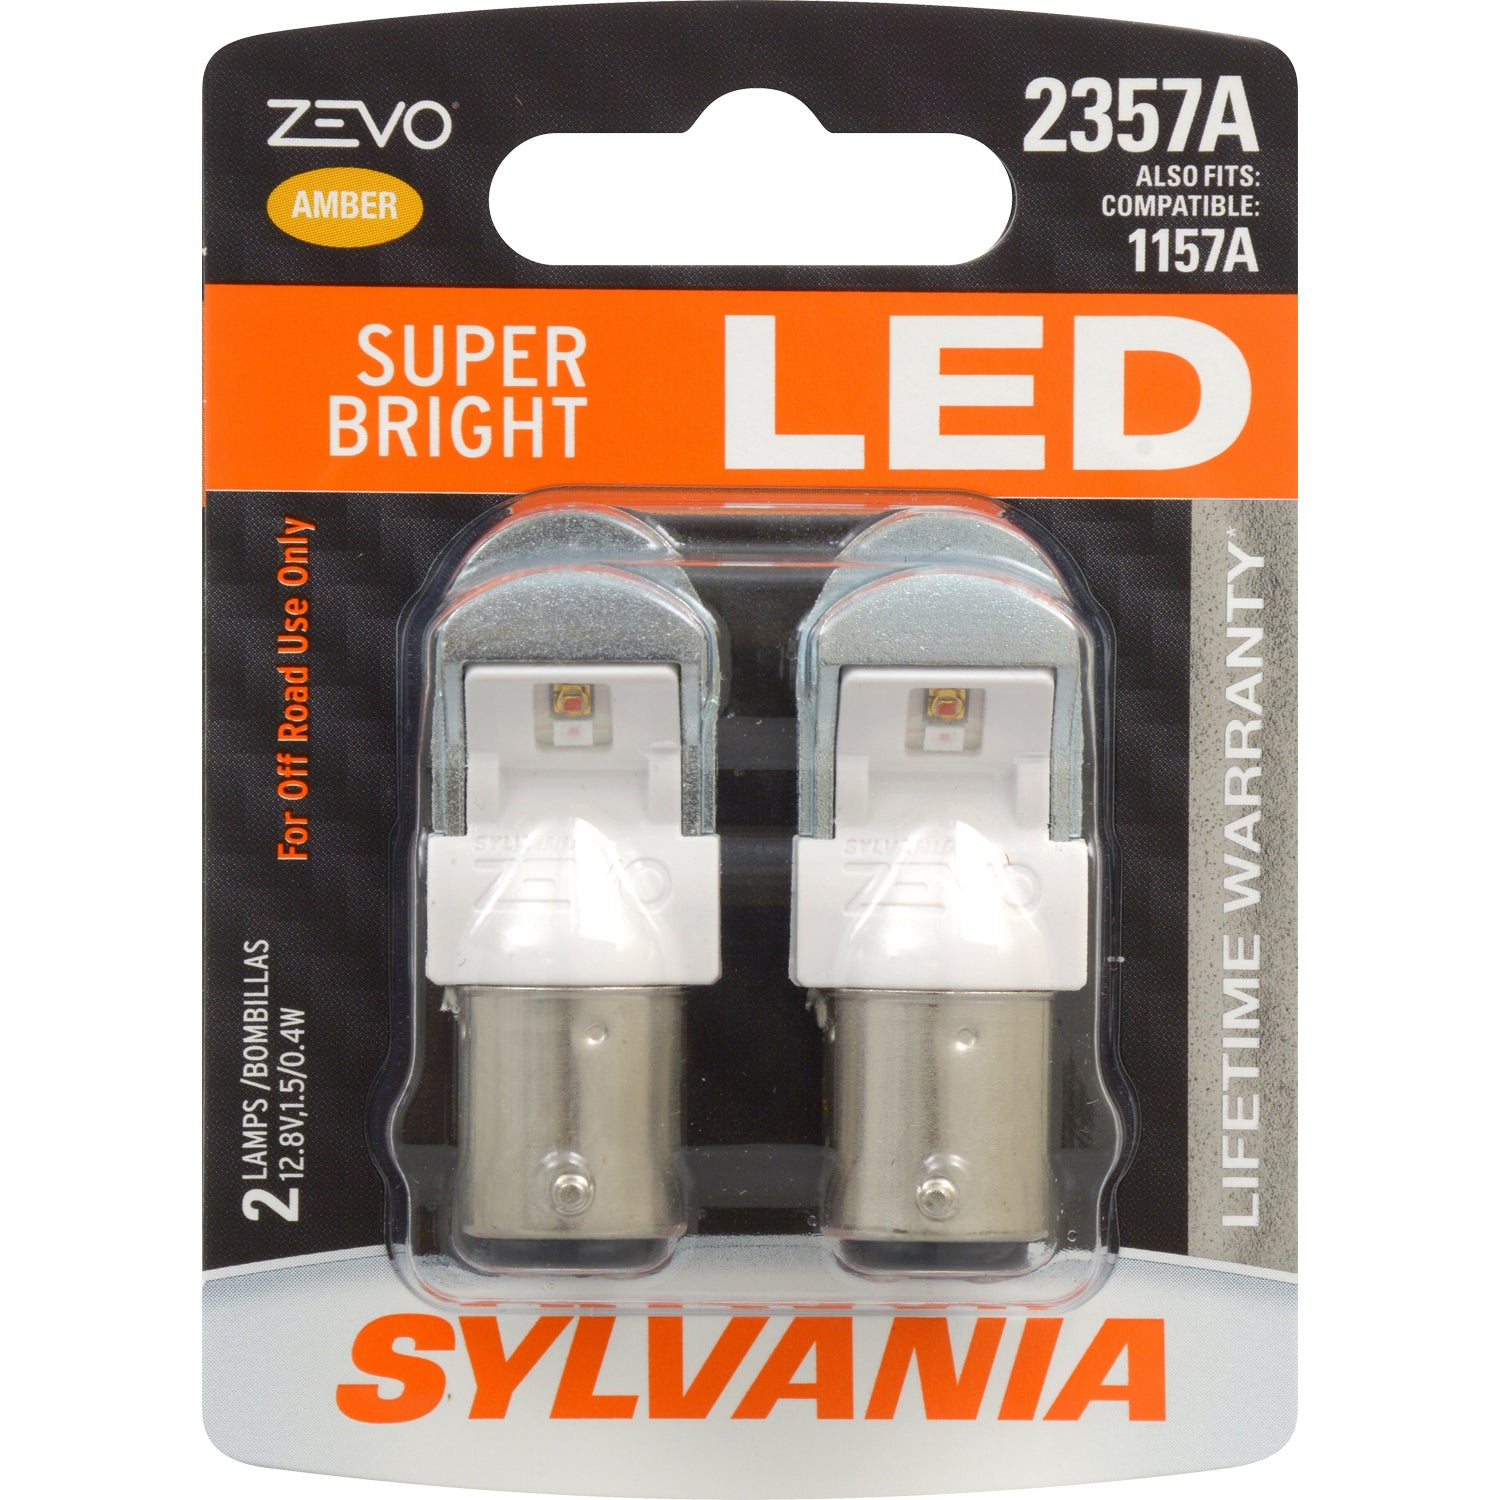 2-PK SYLVANIA 2357 ZEVO LED Amber Automotive Bulb - also fits 2057A 1157A